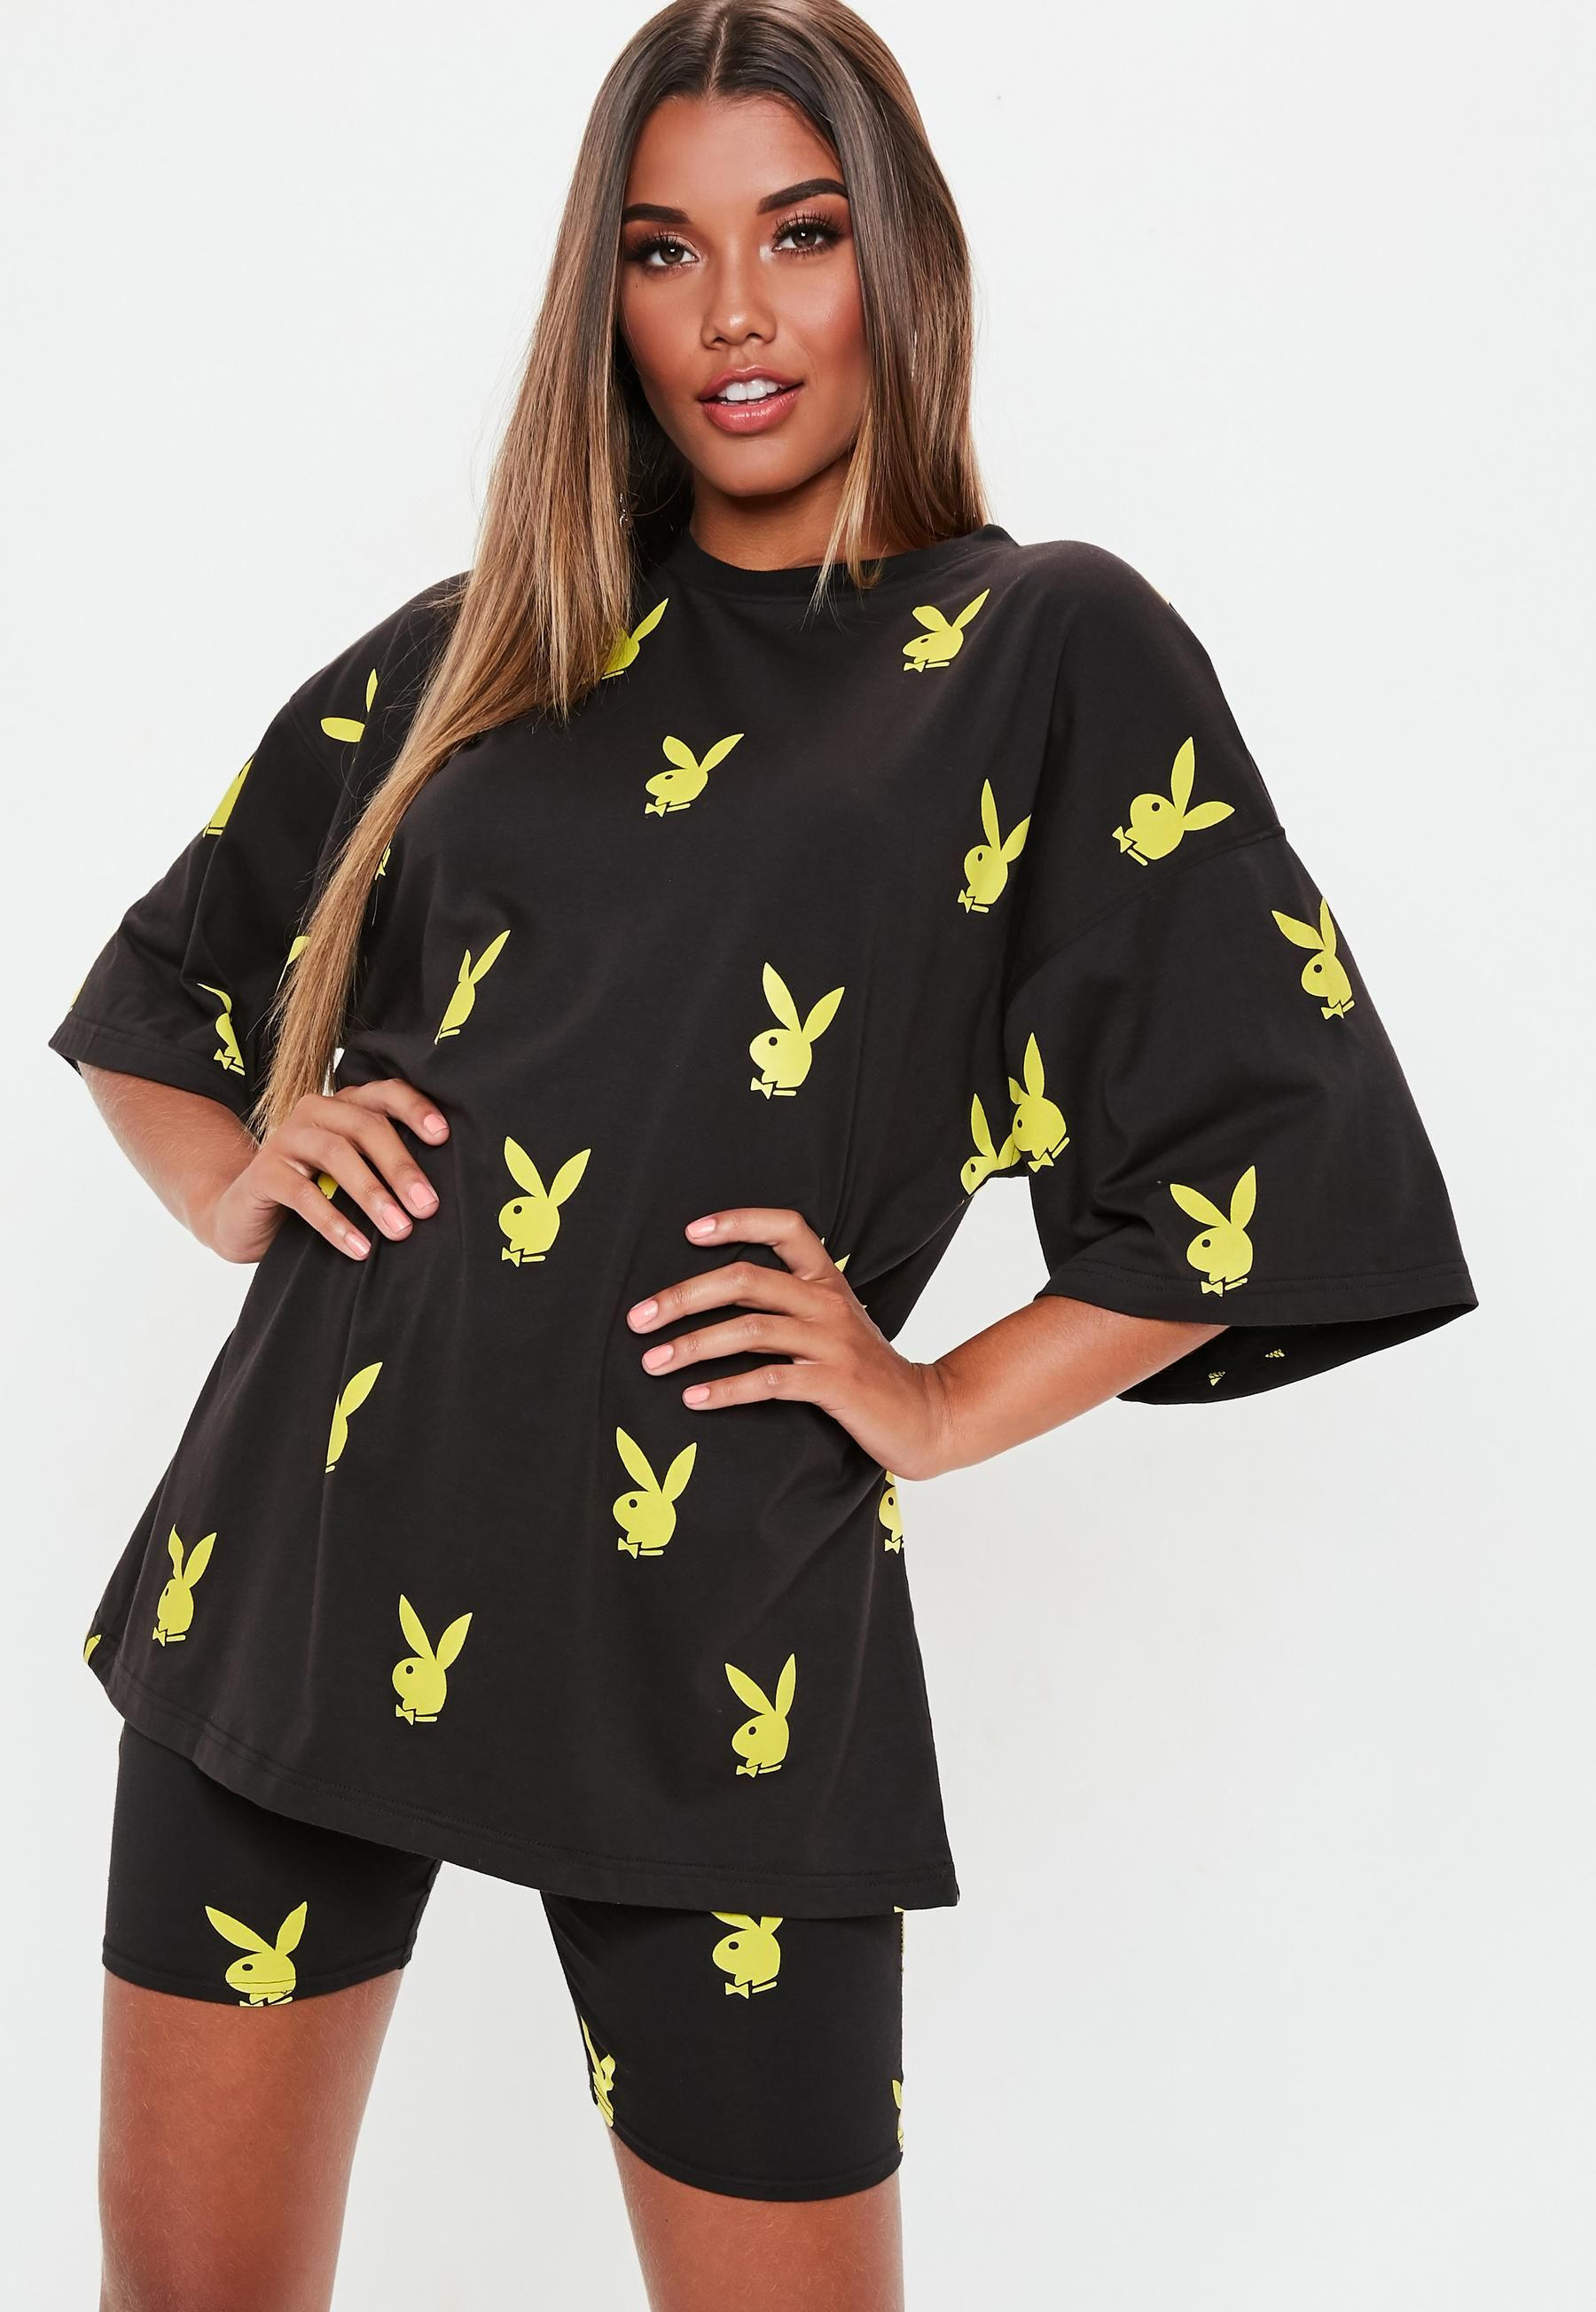 Plus Size Aesthetic Clothing Uk